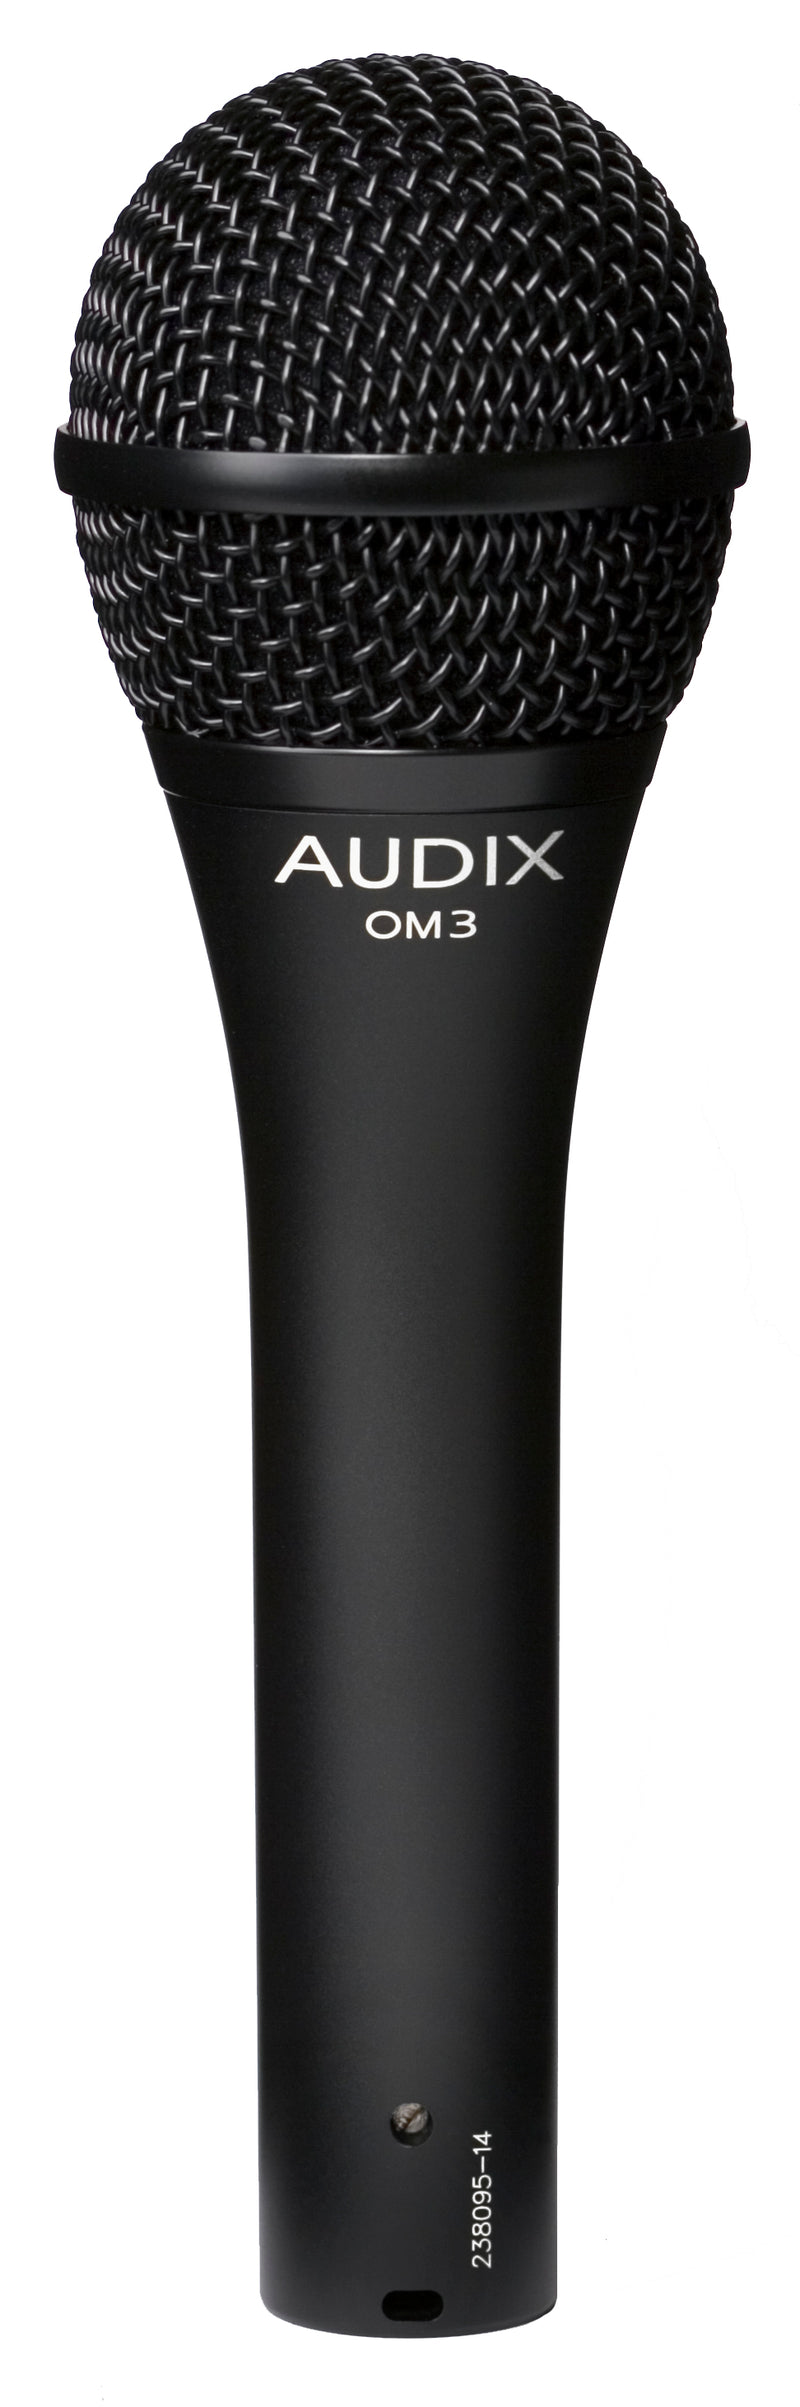 🇺🇸 Audix OM3 Dynamic Multi-Purpose Vocal & Instrument Microphone